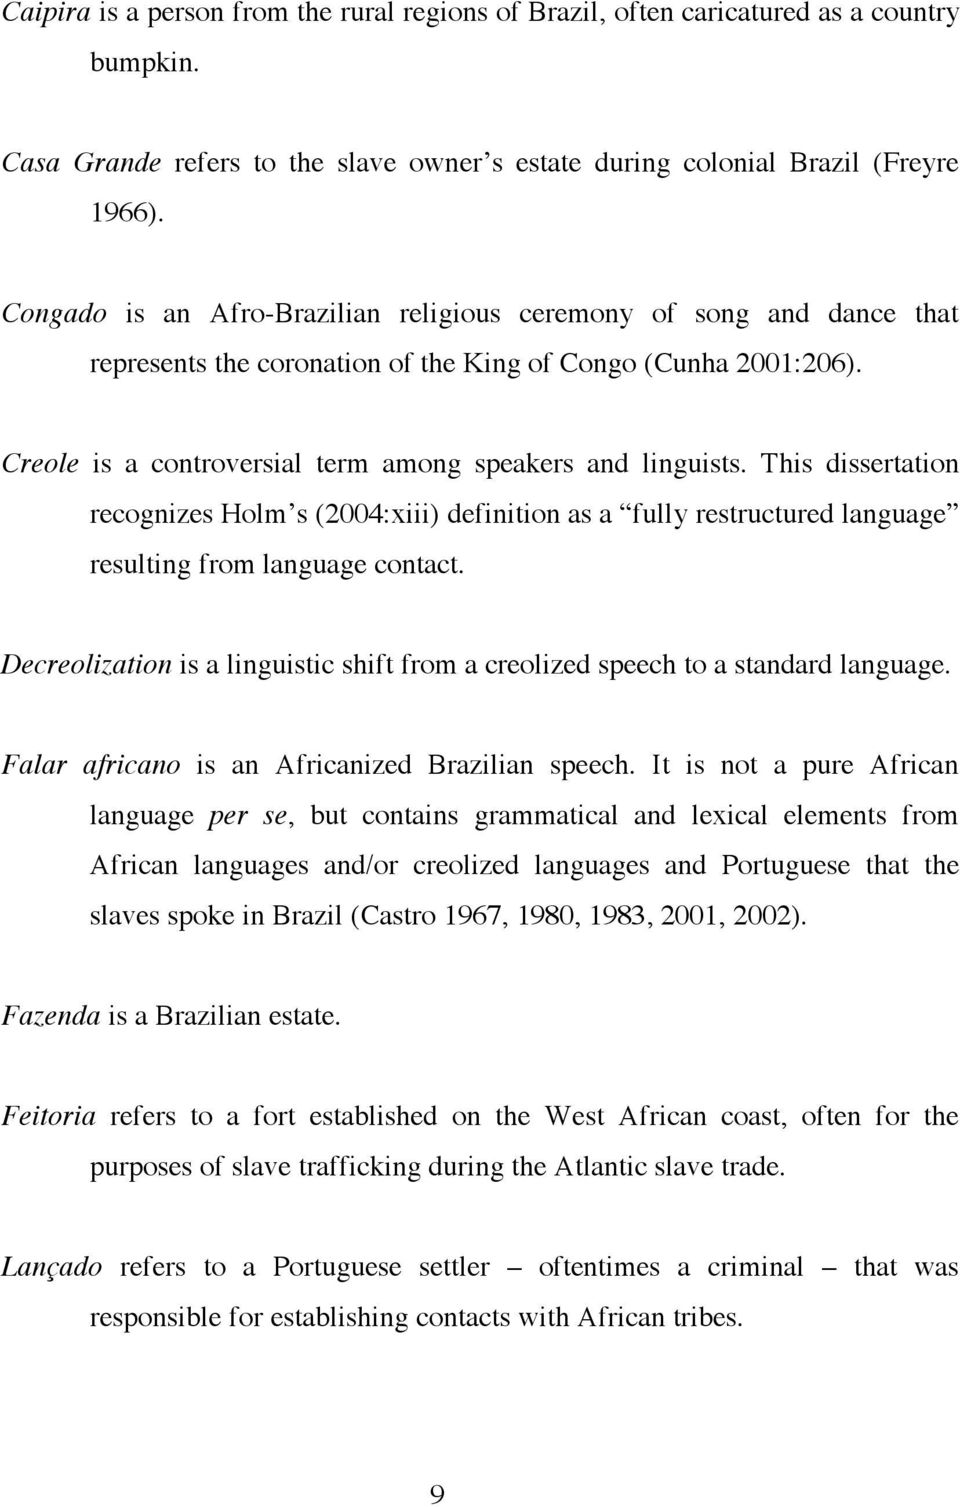 This dissertation recognizes Holm s (2004:xiii) definition as a fully restructured language resulting from language contact.